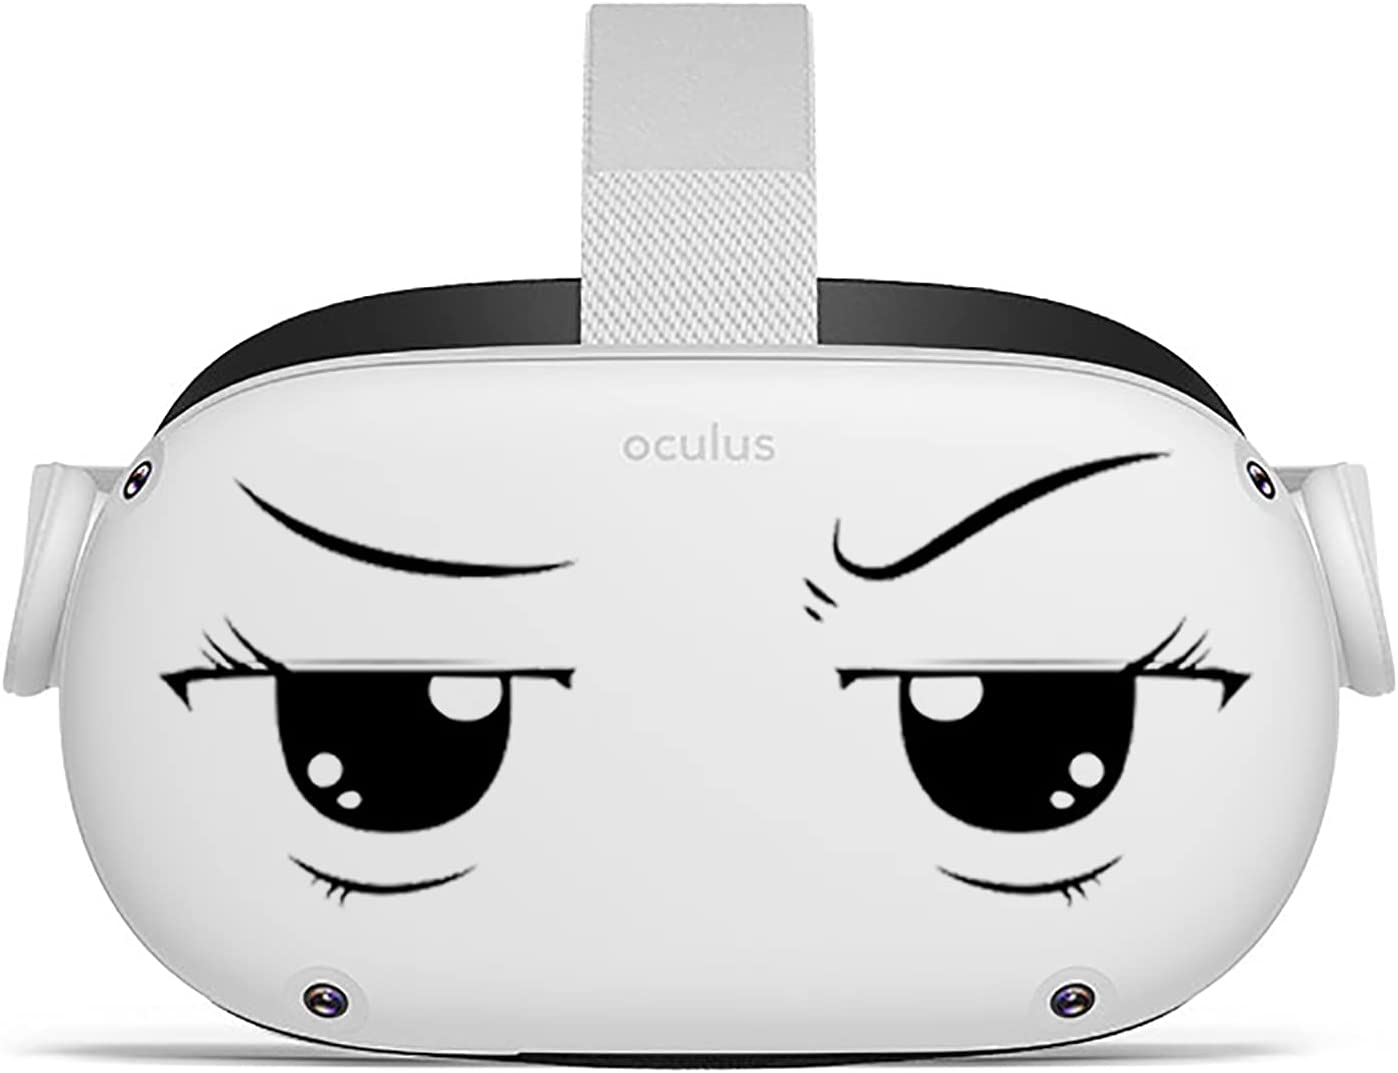 Oculeyes - Oculus Quest 2 VR Headset Stickers - Cartoon Anime Eyes Vinyl Decals - No Background Vinyl Decal Eye Stickers - Stain Resistant Decal Stickers - Easy to Install Oculus Quest 2 Stickers